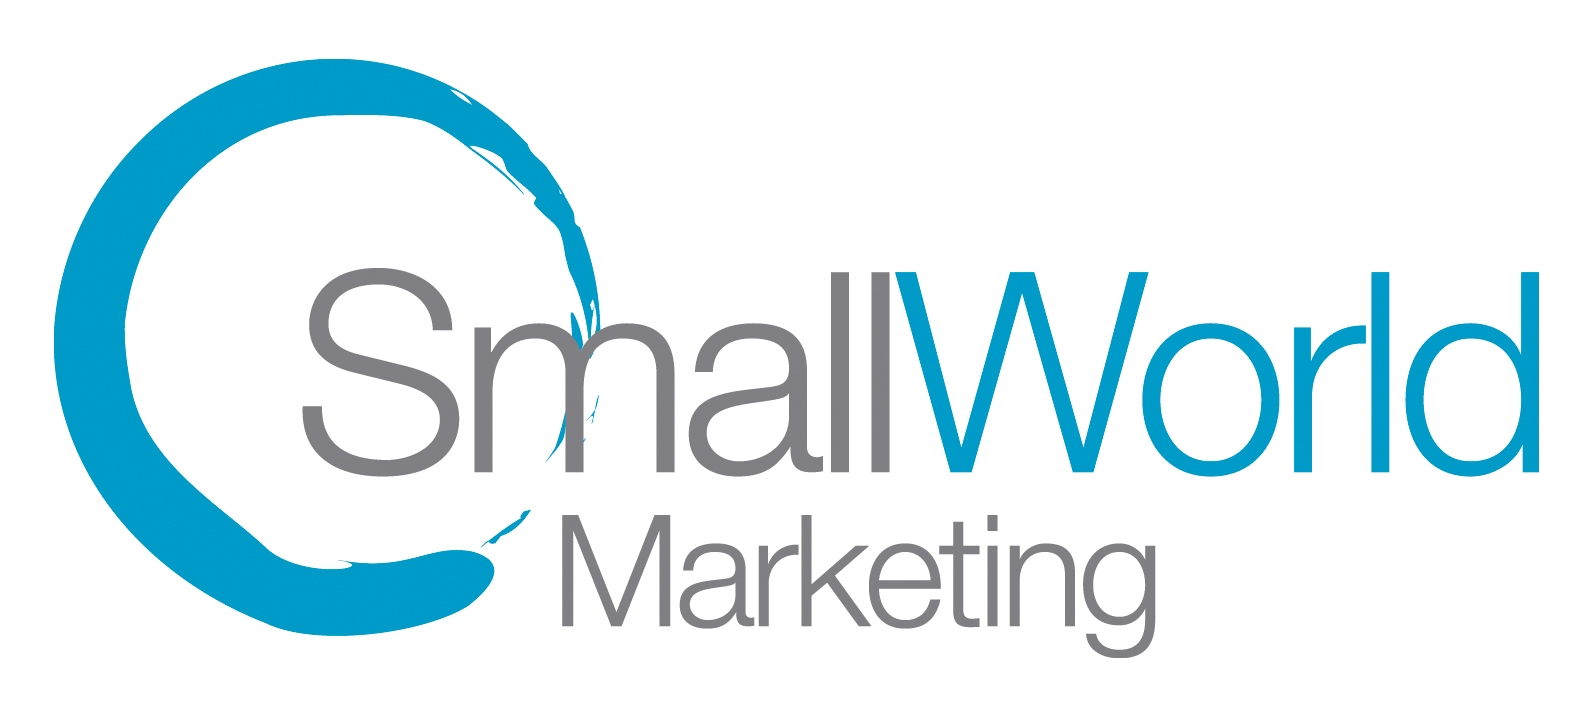 Small World Marketing